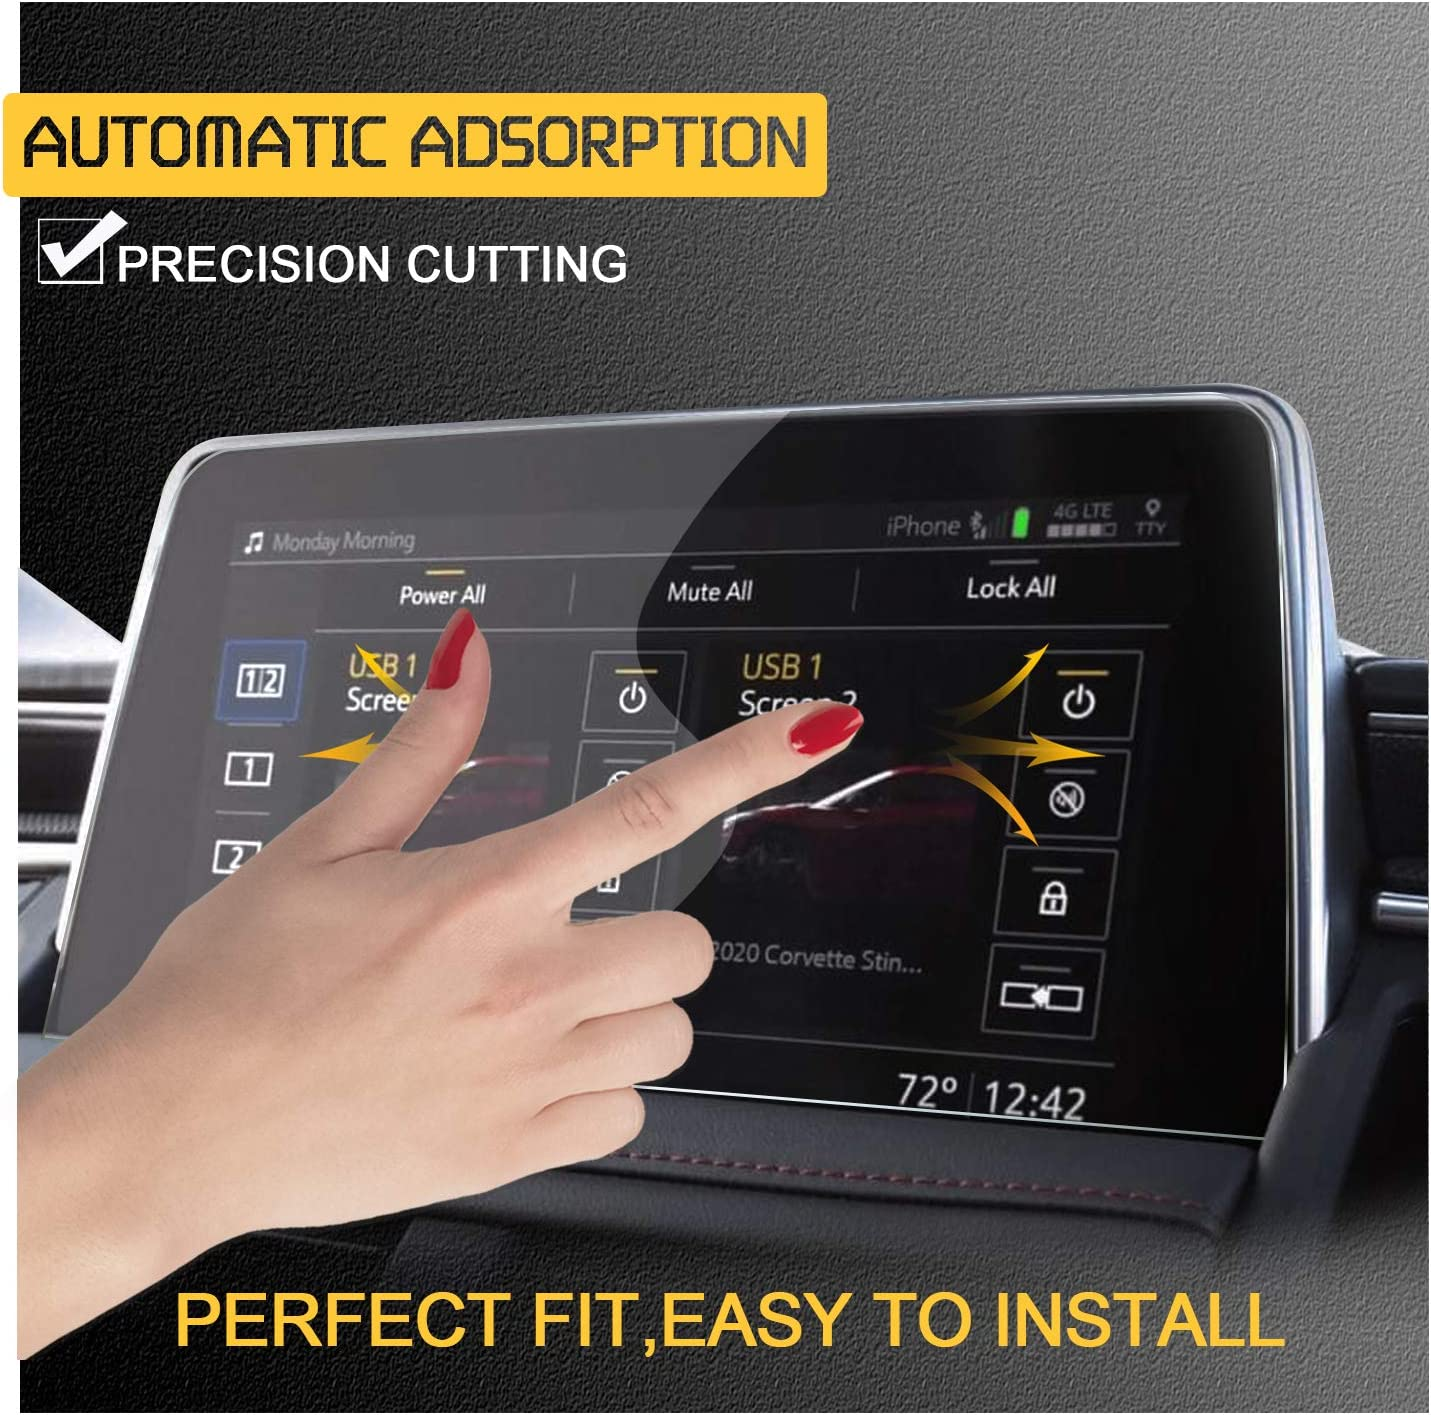 RUIYA 2PCS Center Touch Control Screen Protector for 2021 Chevrolet Tahoe Suburban 10.2INCH Infotainment 3 Plus/Car Navigation PET Anti-Scratch and Shock Resistant Touch Screen Protector